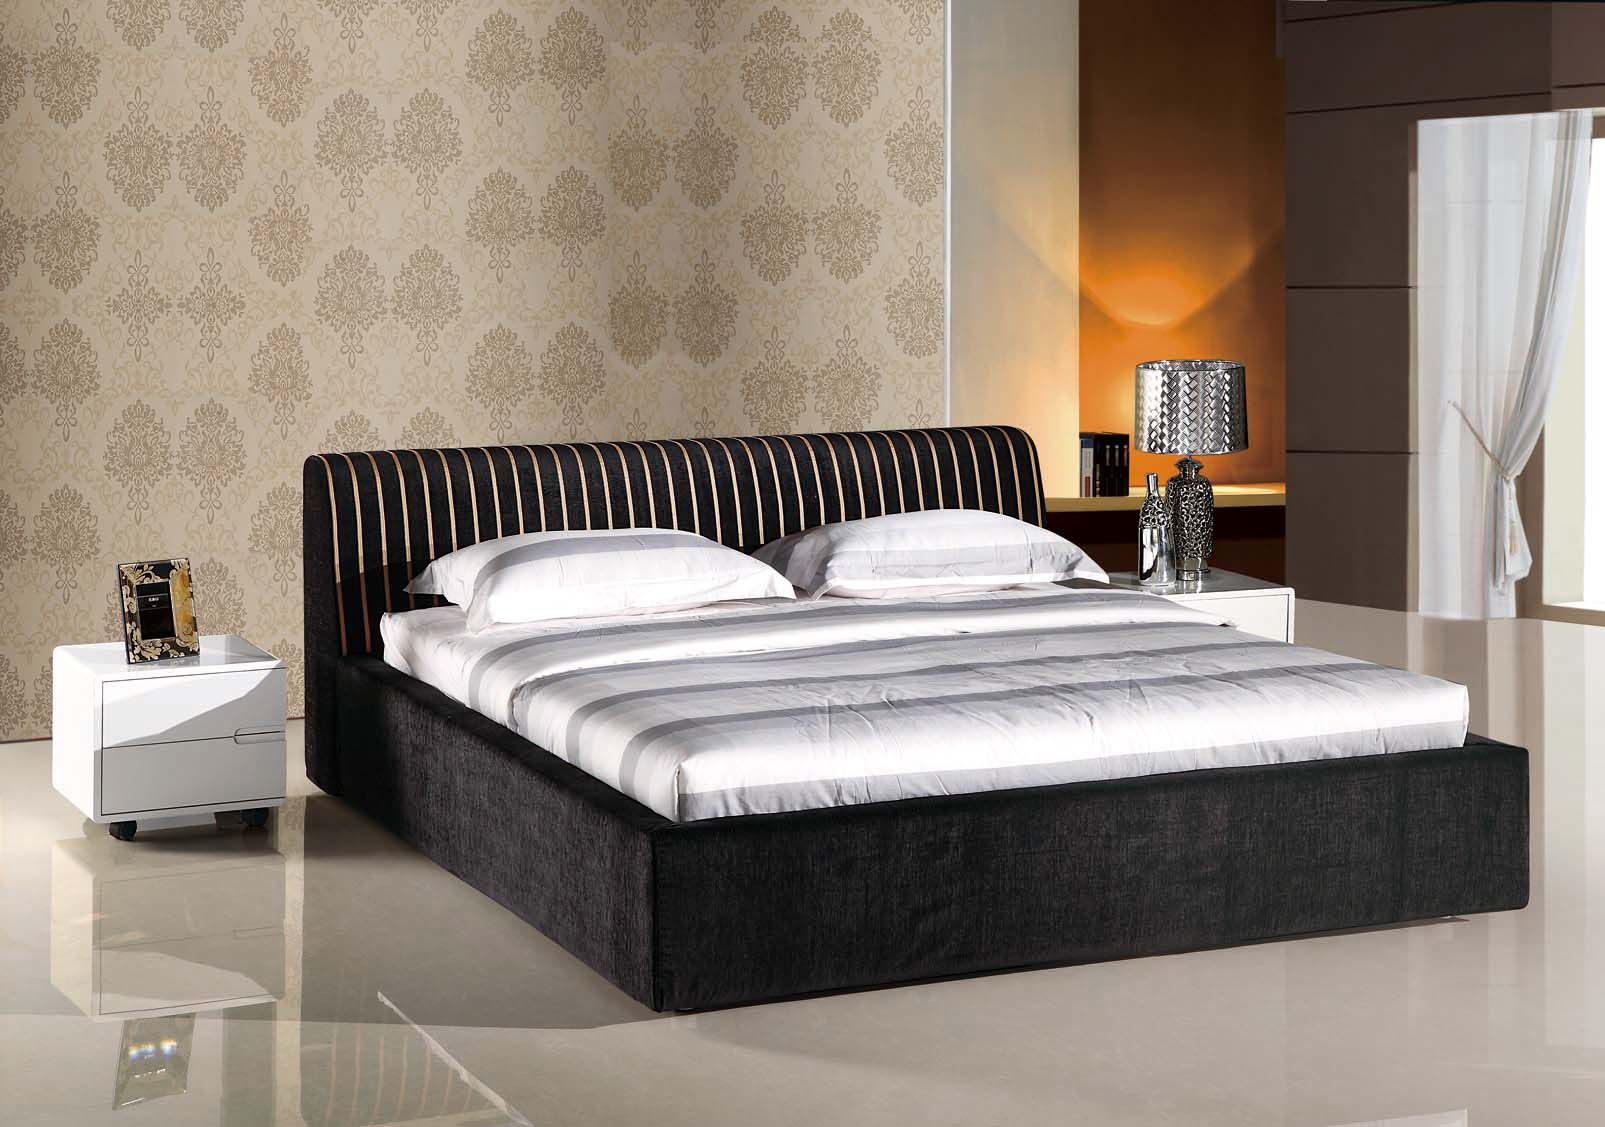 Images Of Furntiure Bedroom Set Bedroom Furniture Beds Sofa